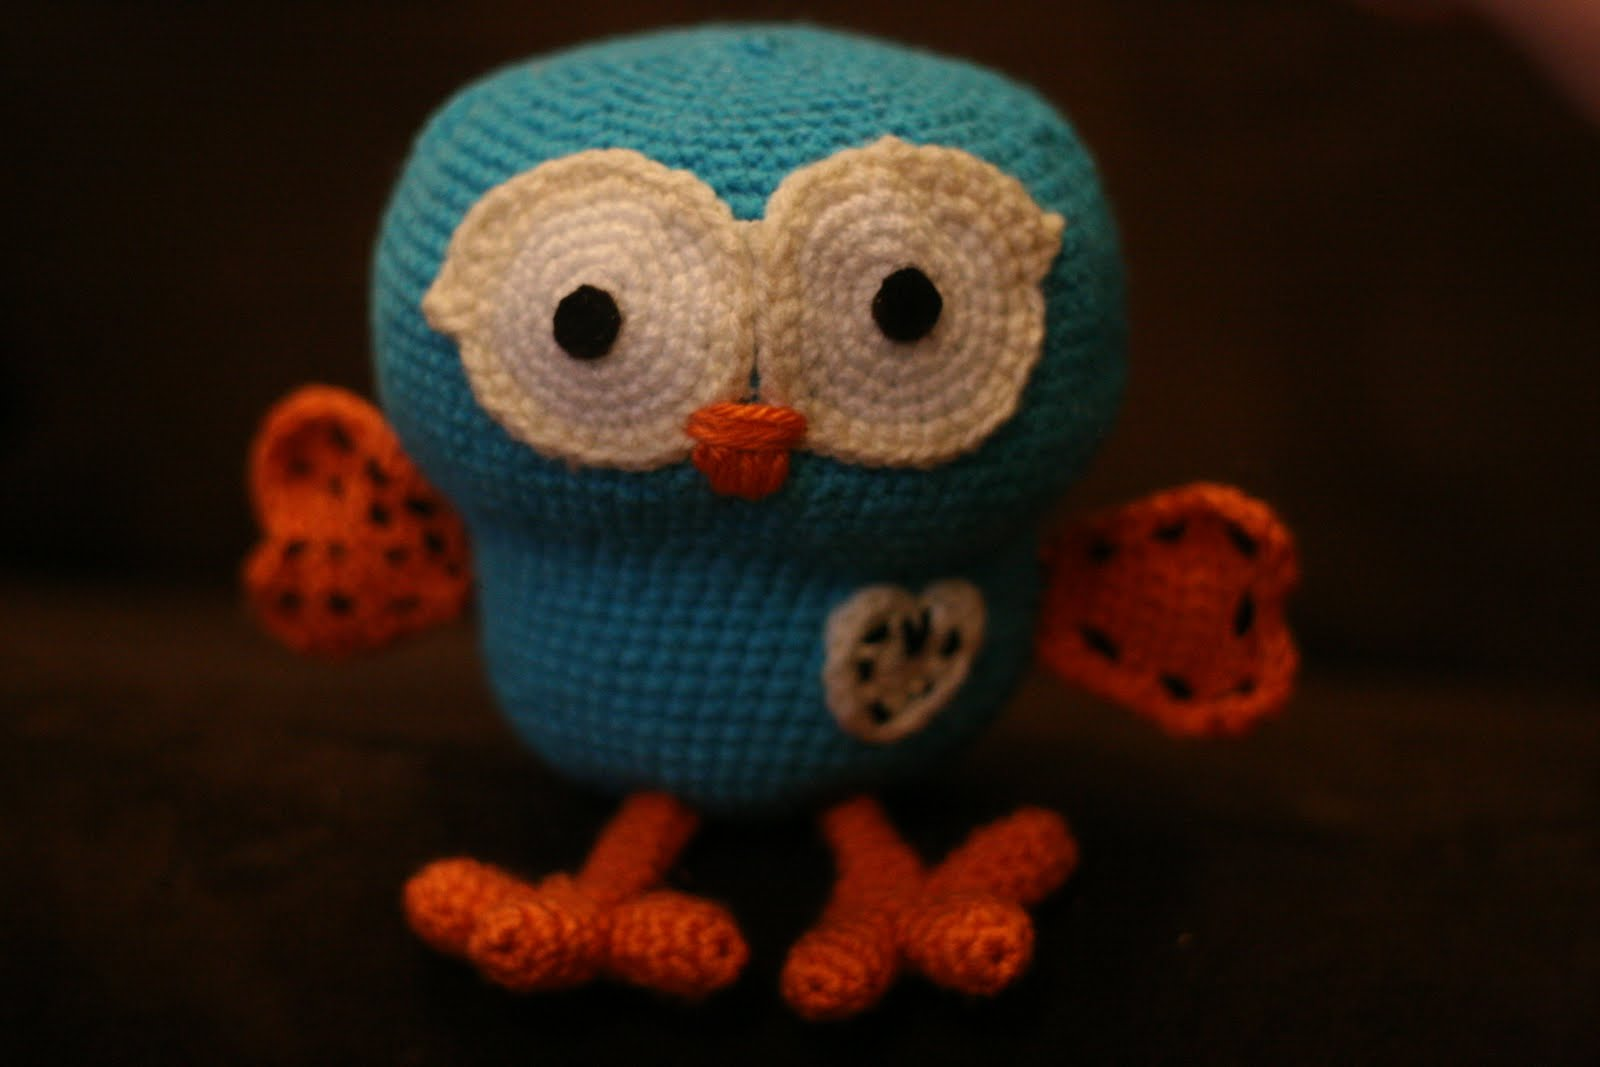 Amigurumi Patterns Owl : 2000 Free Amigurumi Patterns: Giggle and Hoot: free owl ...